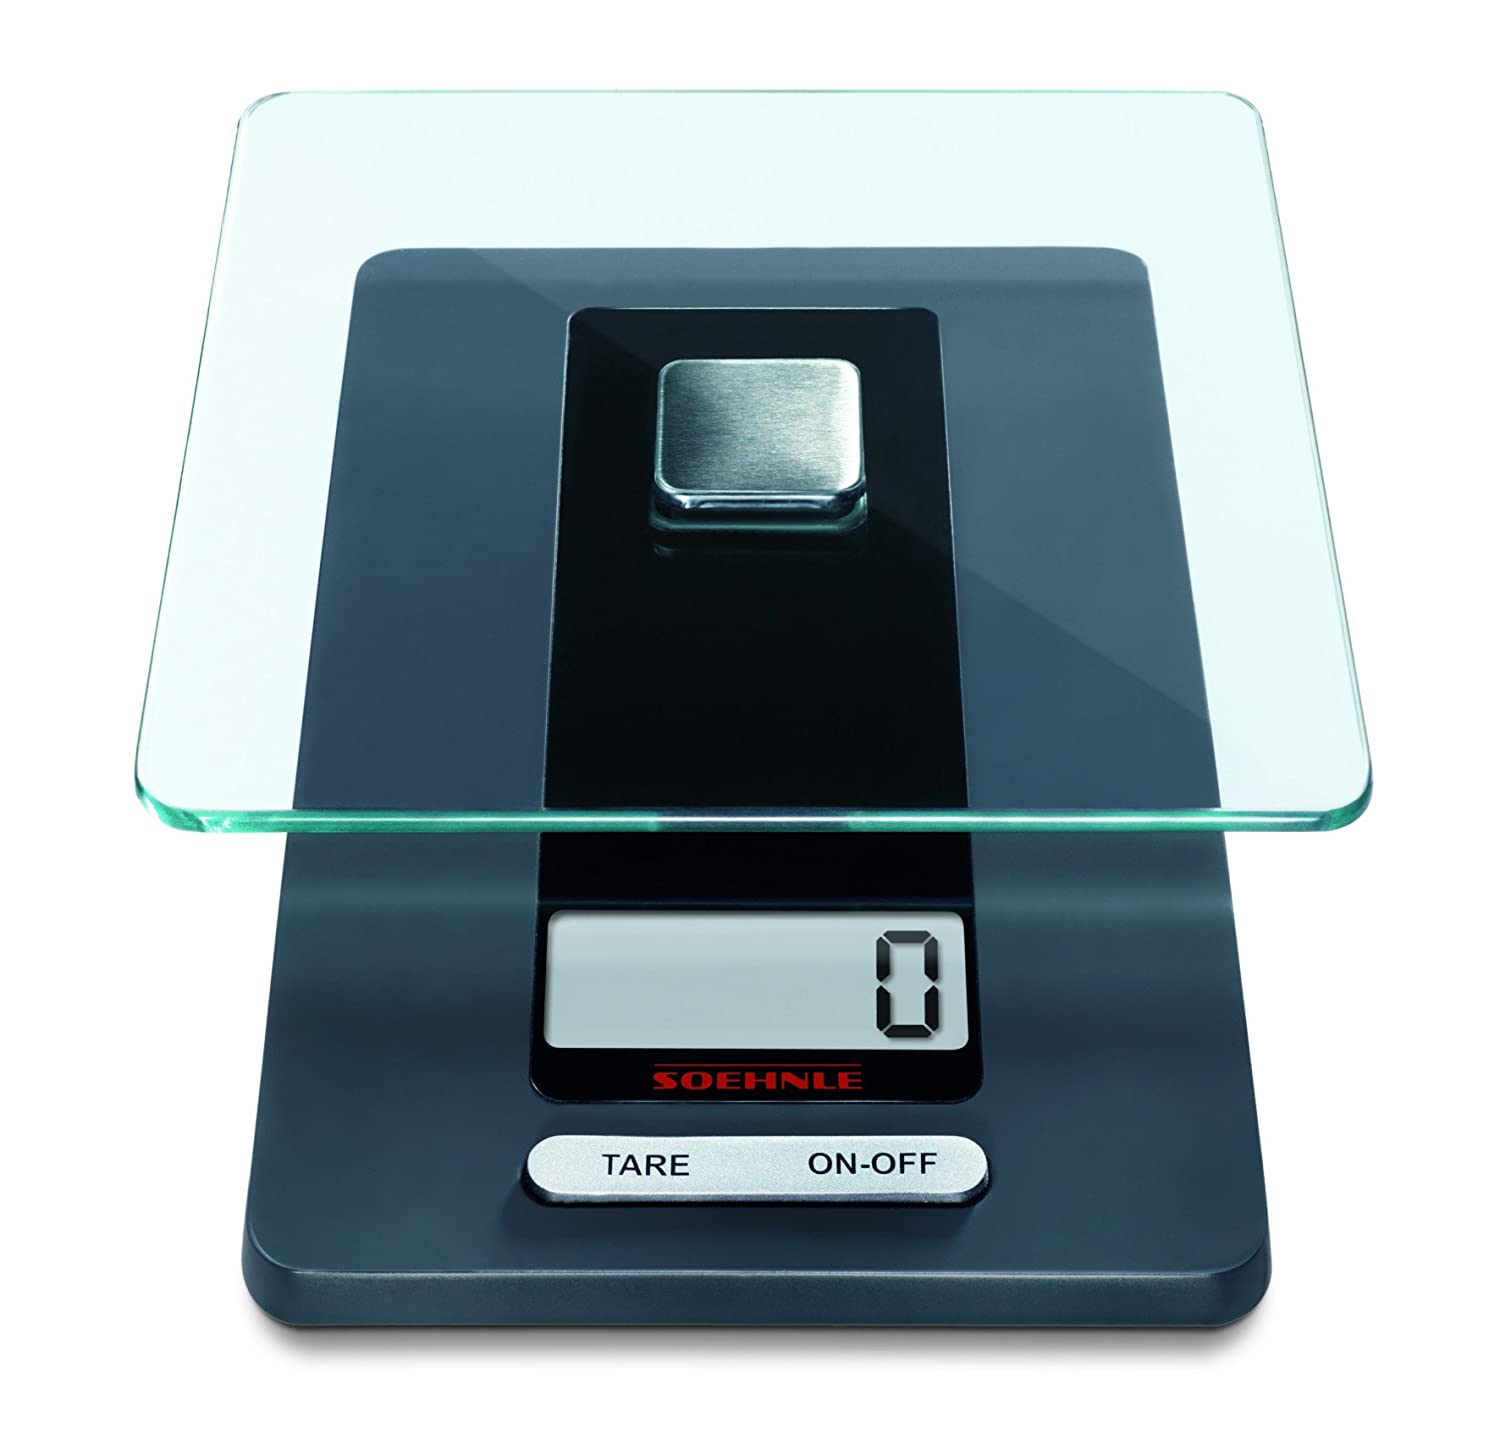 Soehnle KSD Fiesta Digital Kitchen Scale